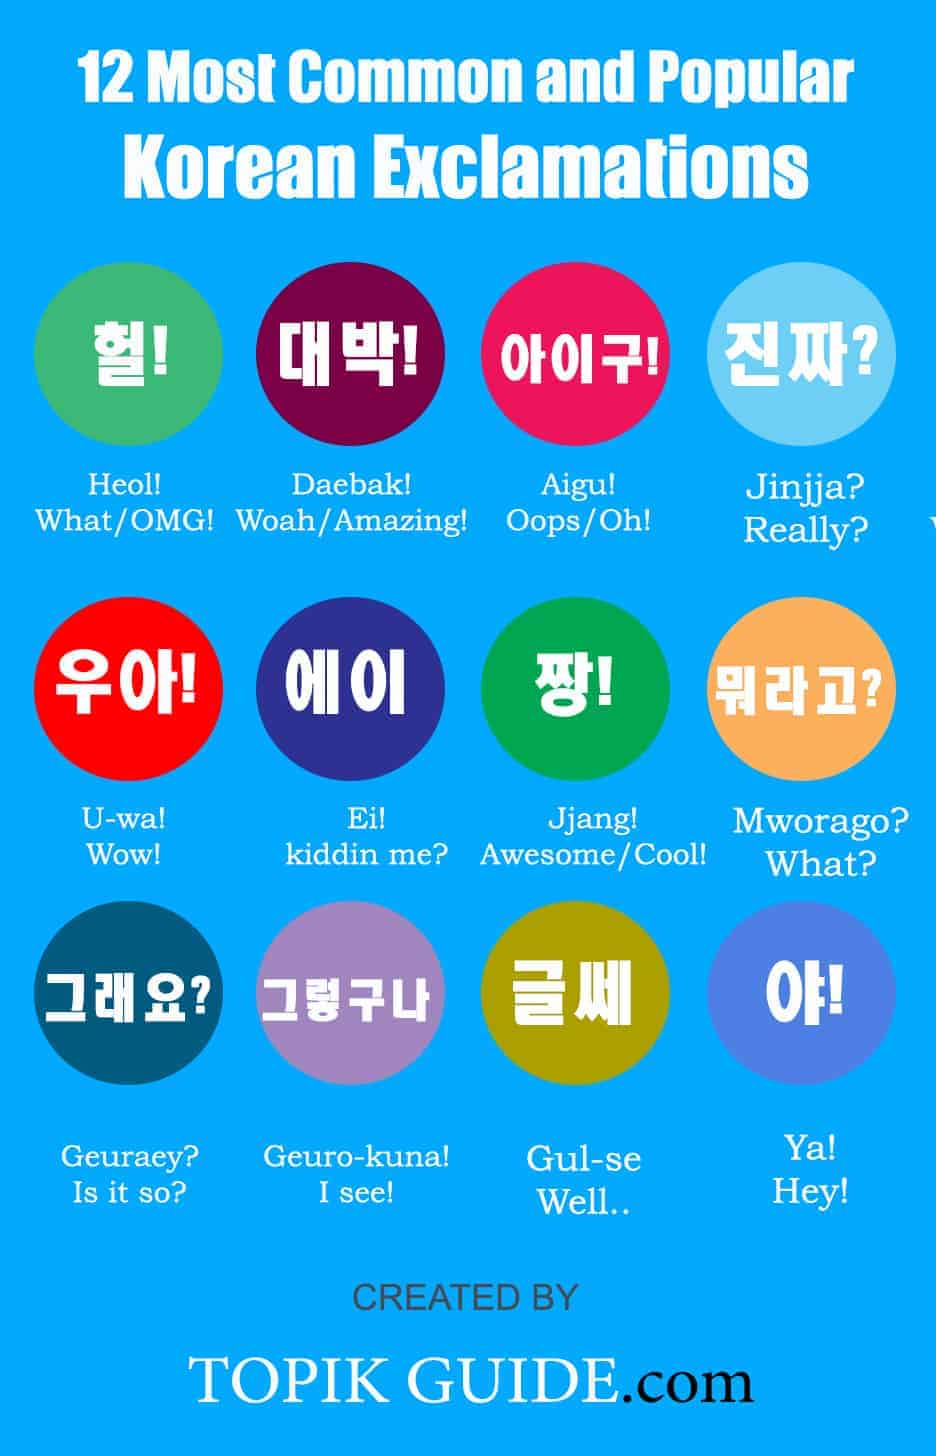 12-Most-Common-and-Popular-Korean-Exclamations